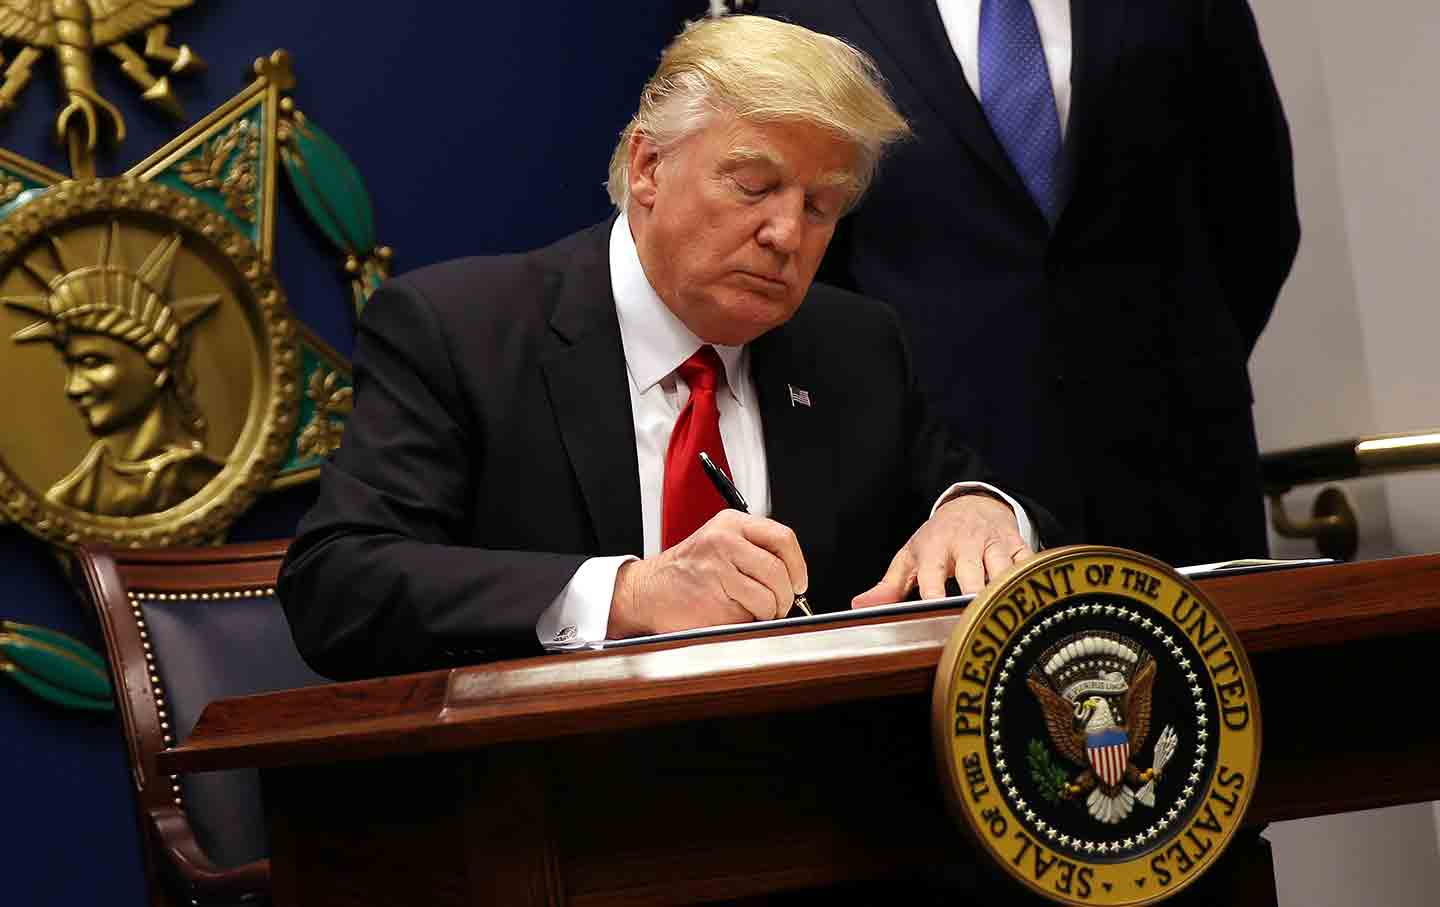 Federal judge blocks Trump immigration ban nationwide